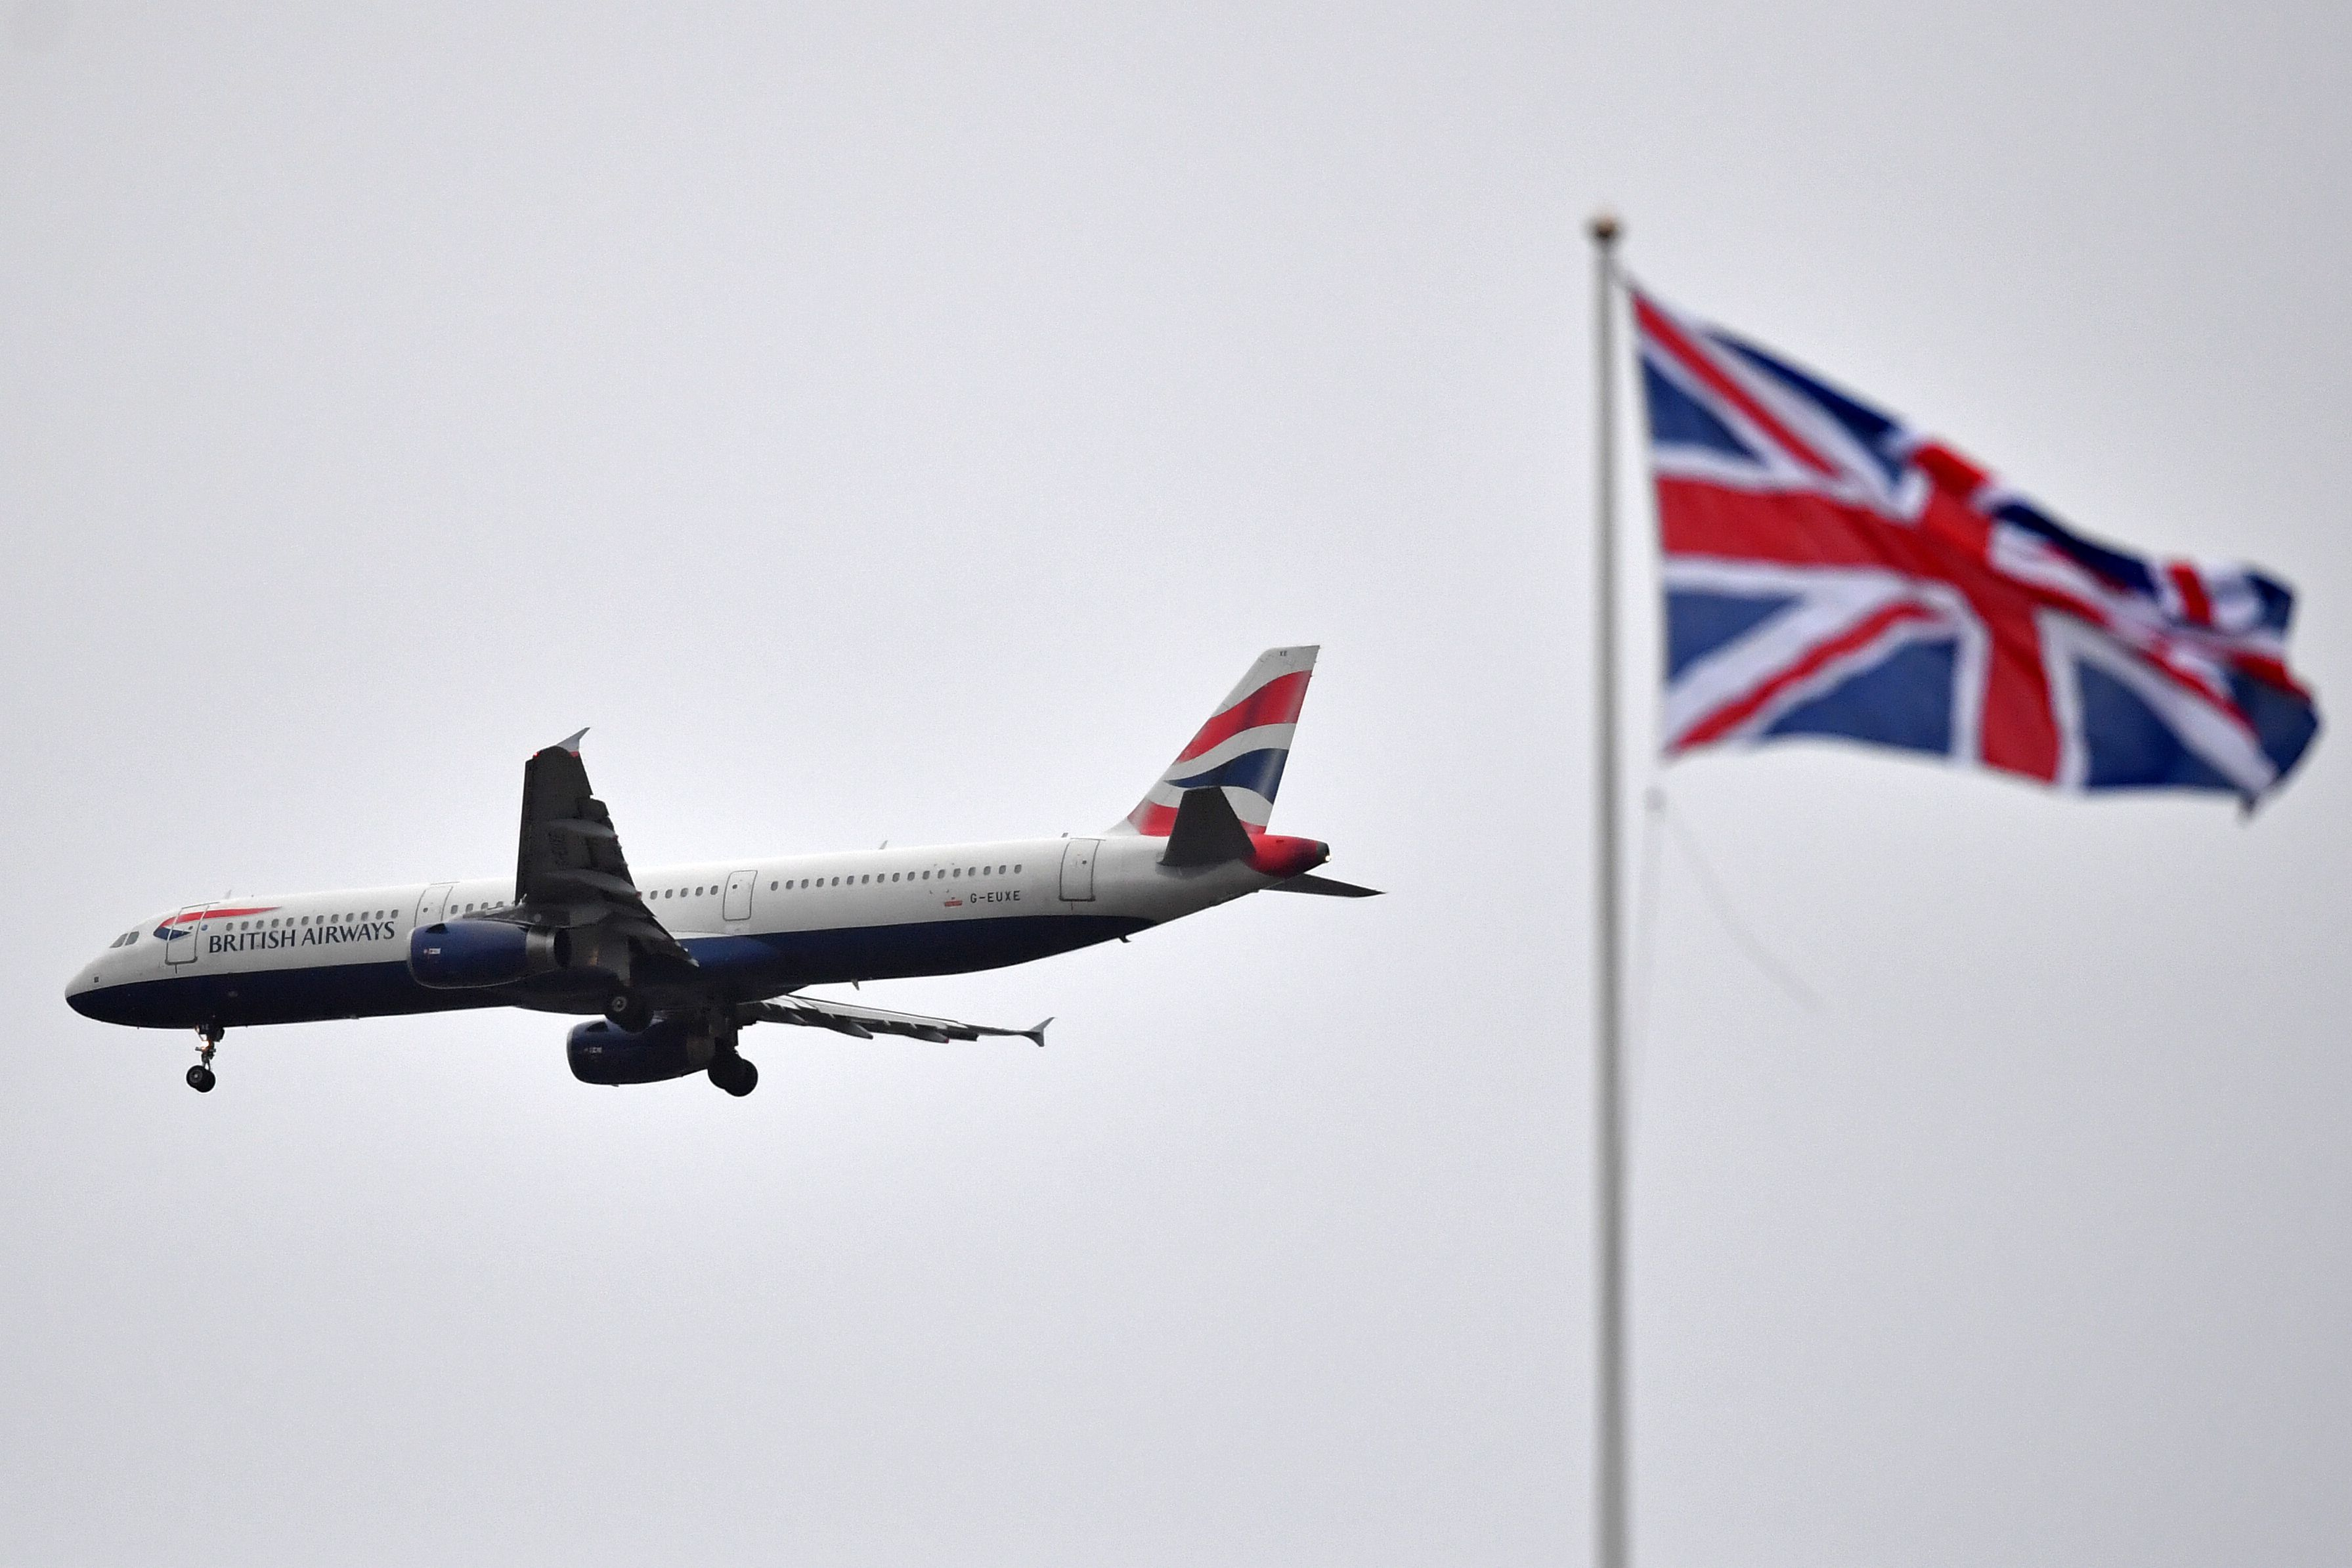 A British Airways Flight From London to Germany Accidentally Landed in Scotland